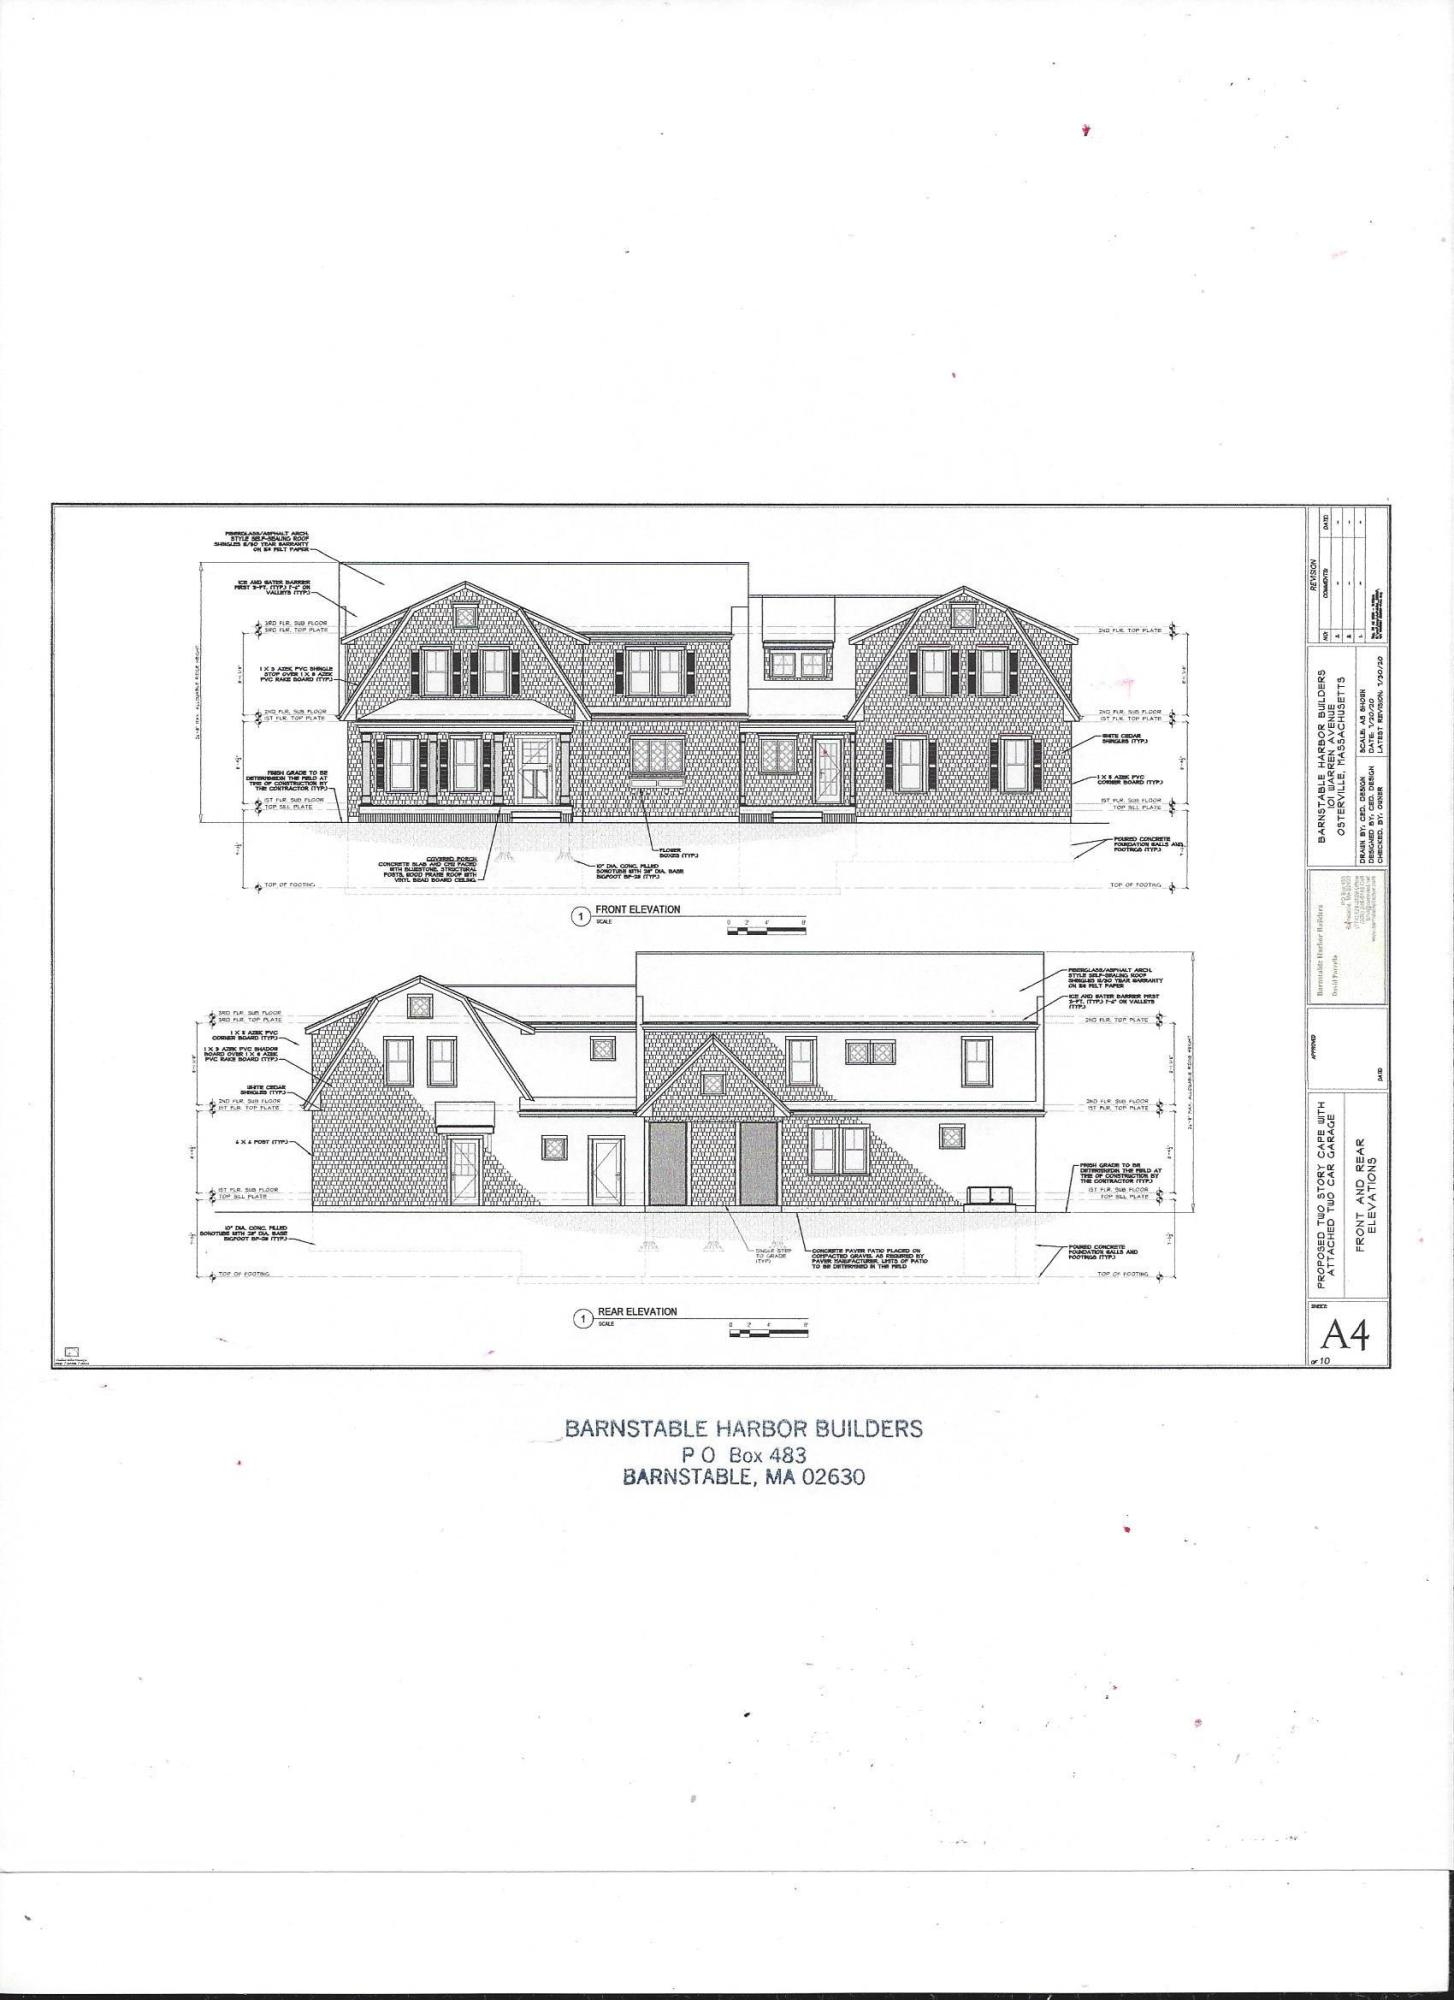 New Construction Homes in Barnstable MA